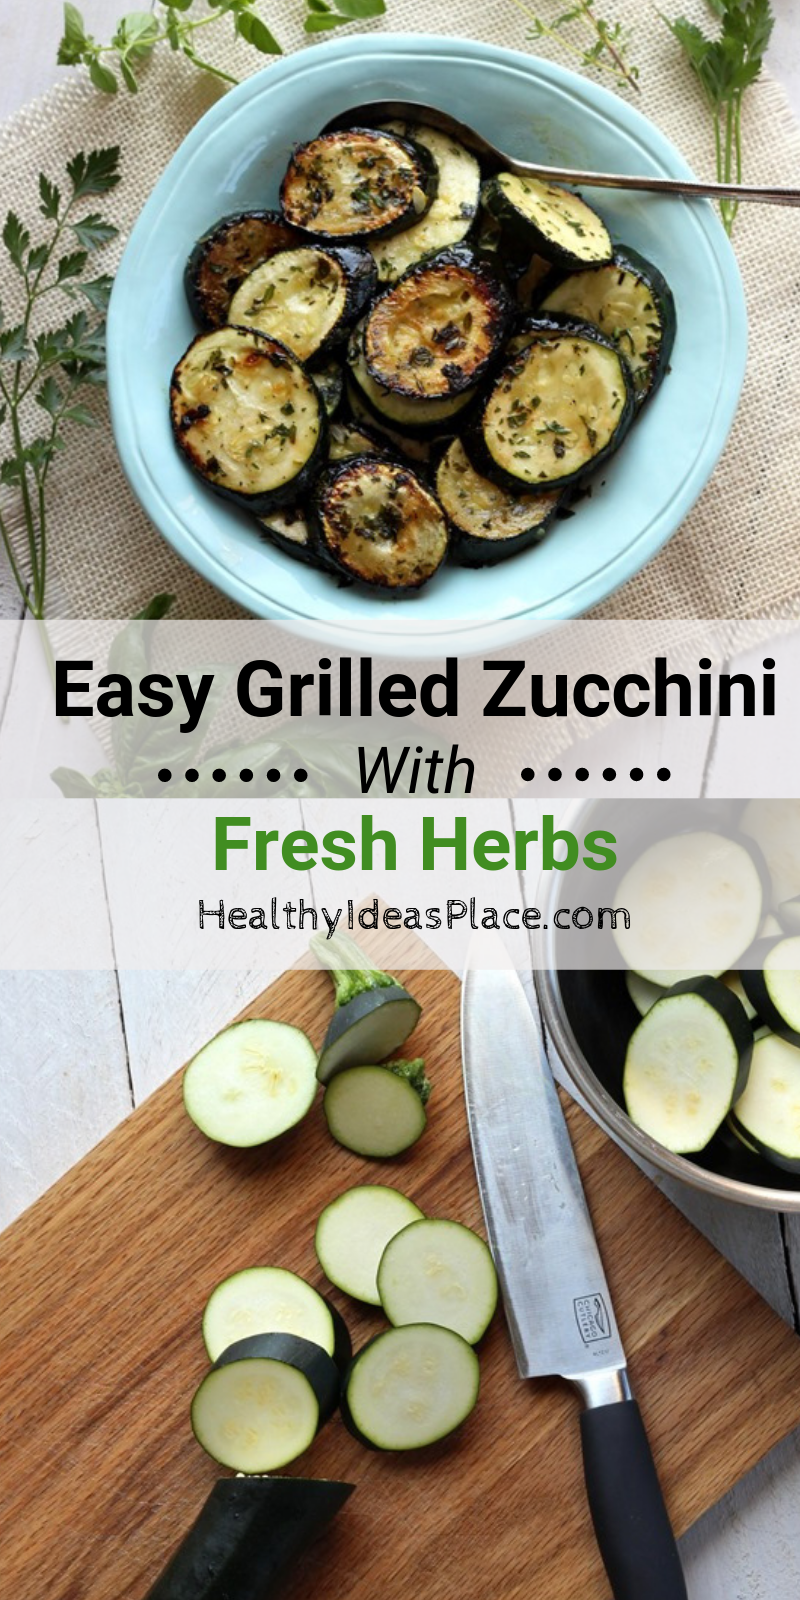 Collage picture of grilled zucchini in teal bowl and sliced zucchini on cutting board